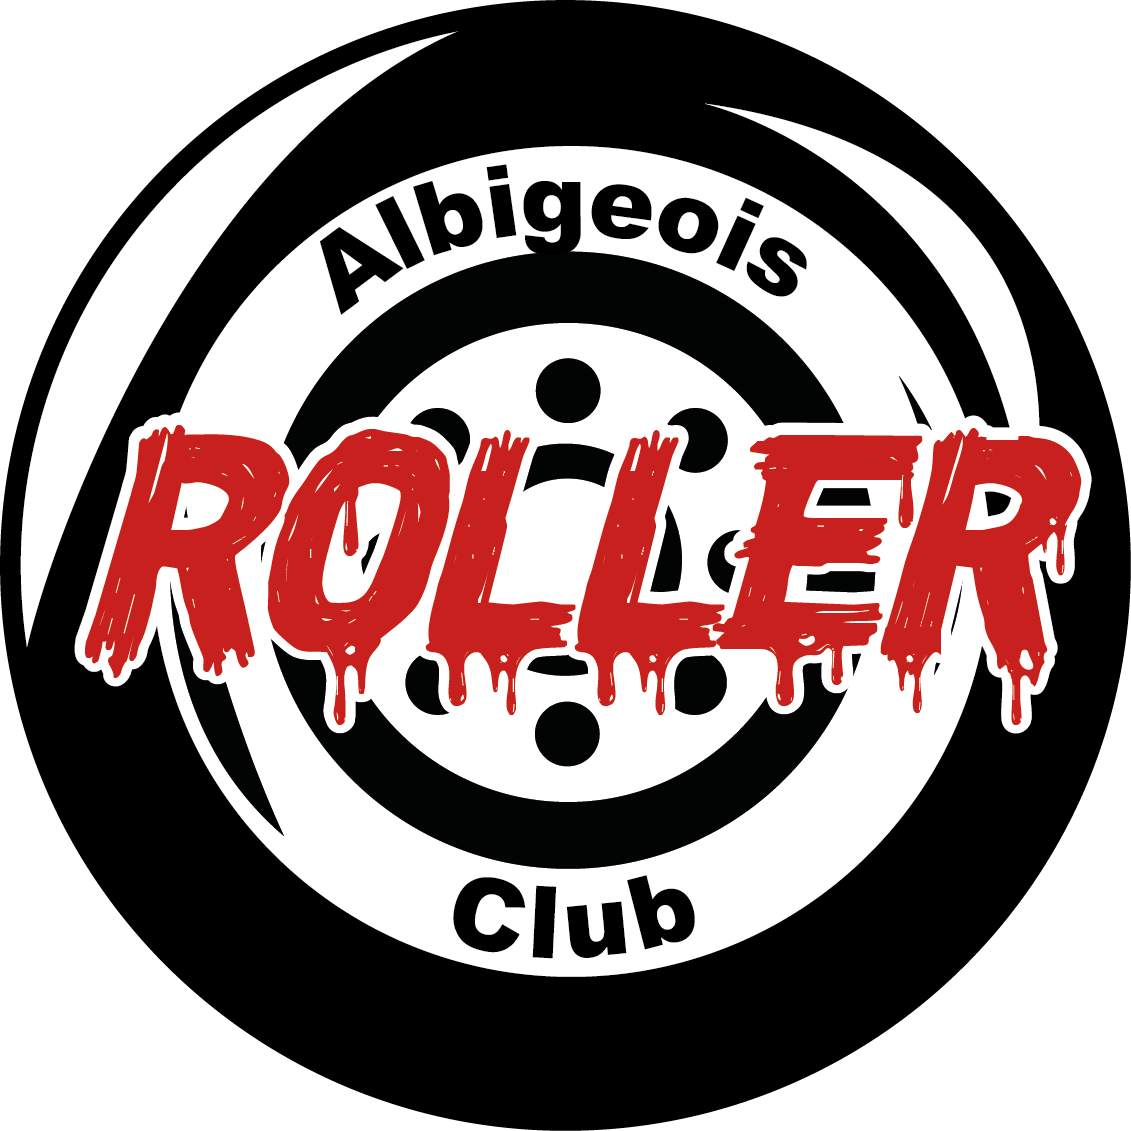 l'Albigeois Roller Club